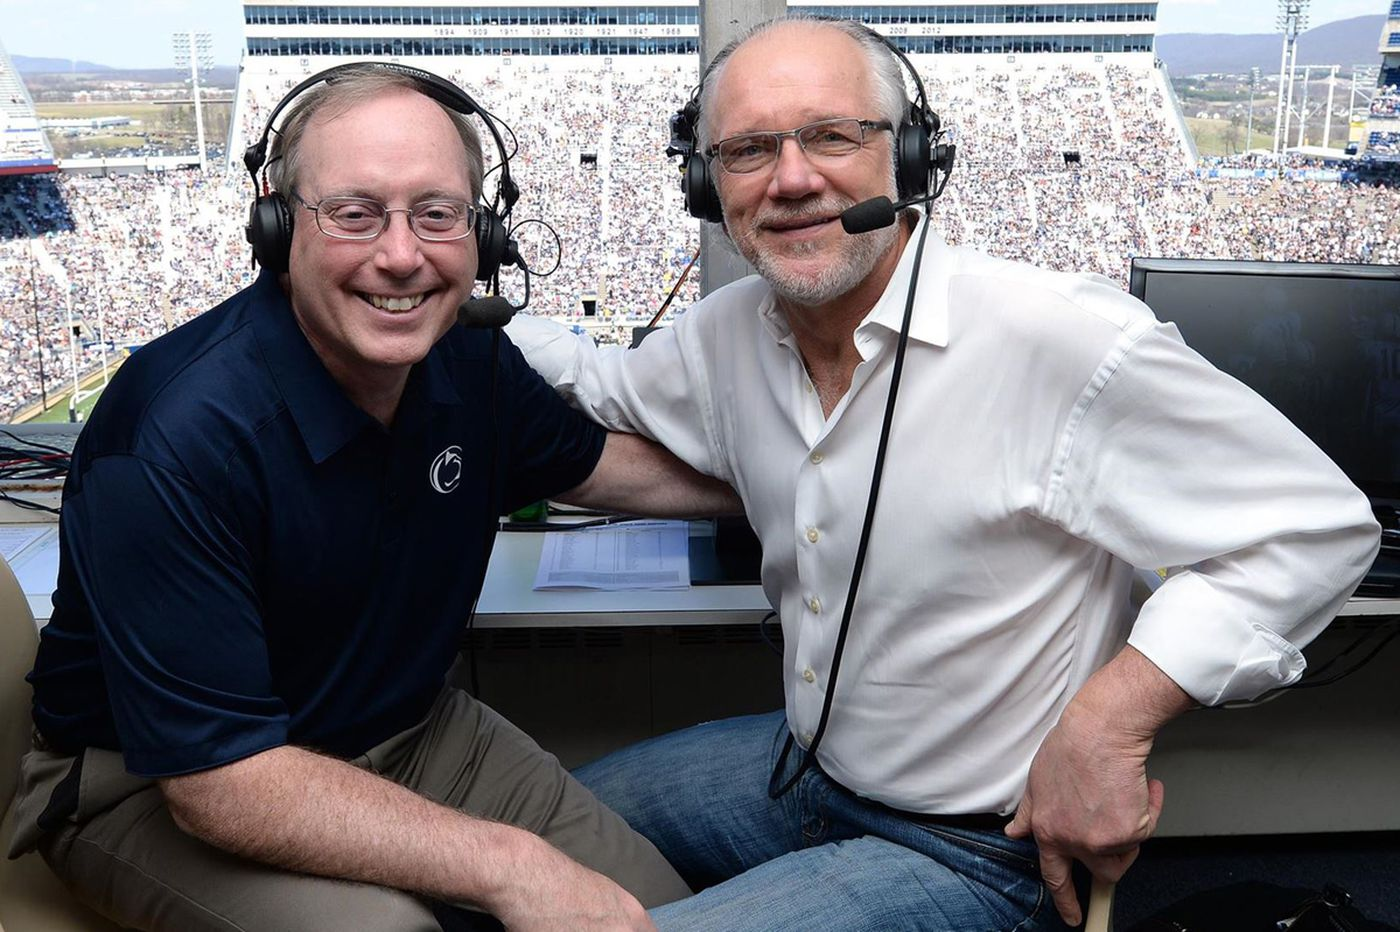 Penn State football has a new home on Philly radio, with Steve Jones and Jack Ham back in the booth